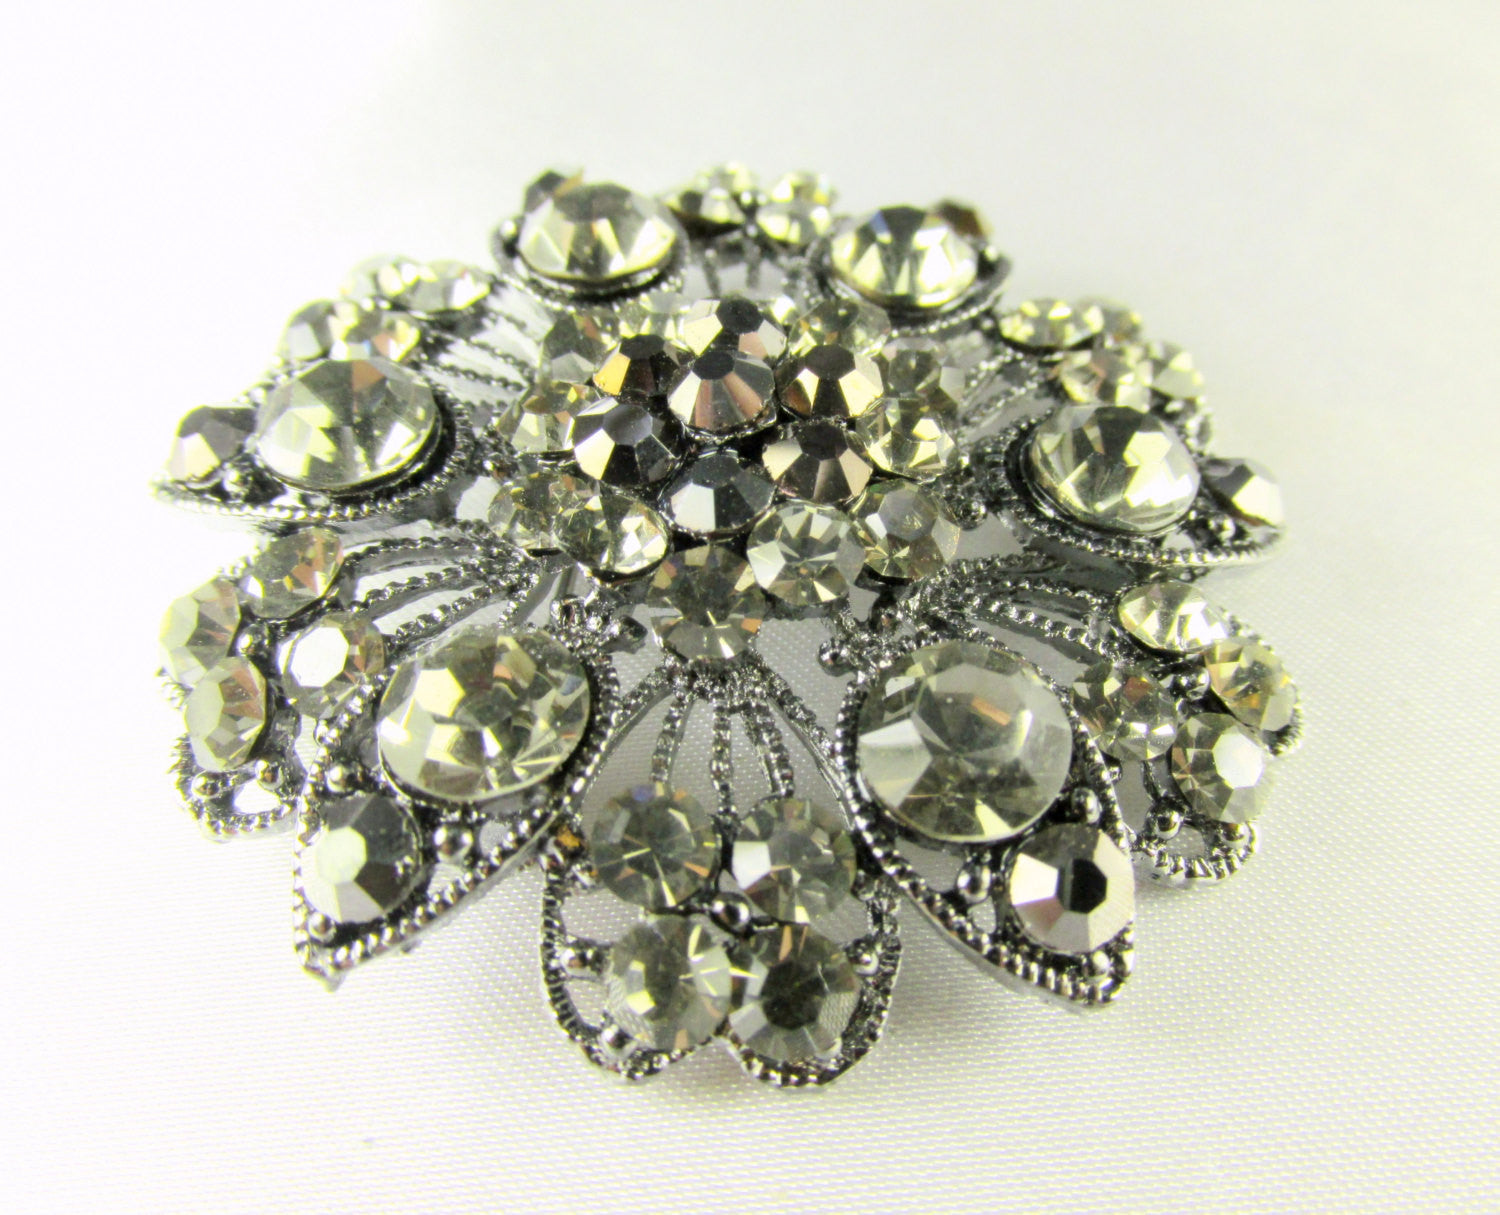 Large Vintage Styled Gray, Black Gunmetal Flower Brooch - Odyssey Creations